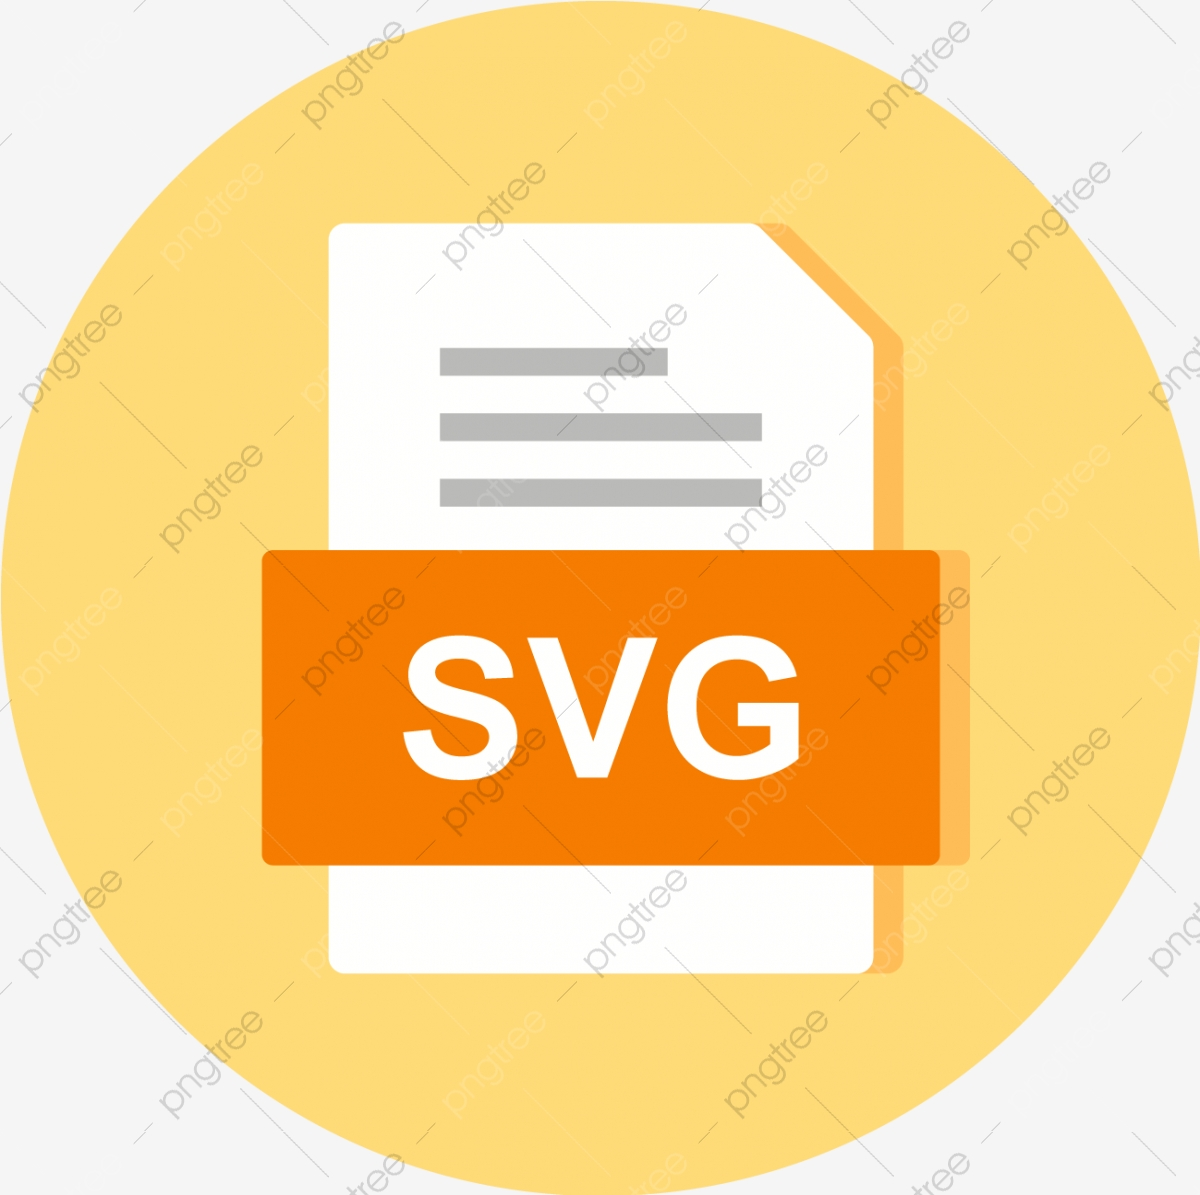 Svg File Document Icon Document Icons File Icons Svg Png And Vector With Transparent Background For Free Download